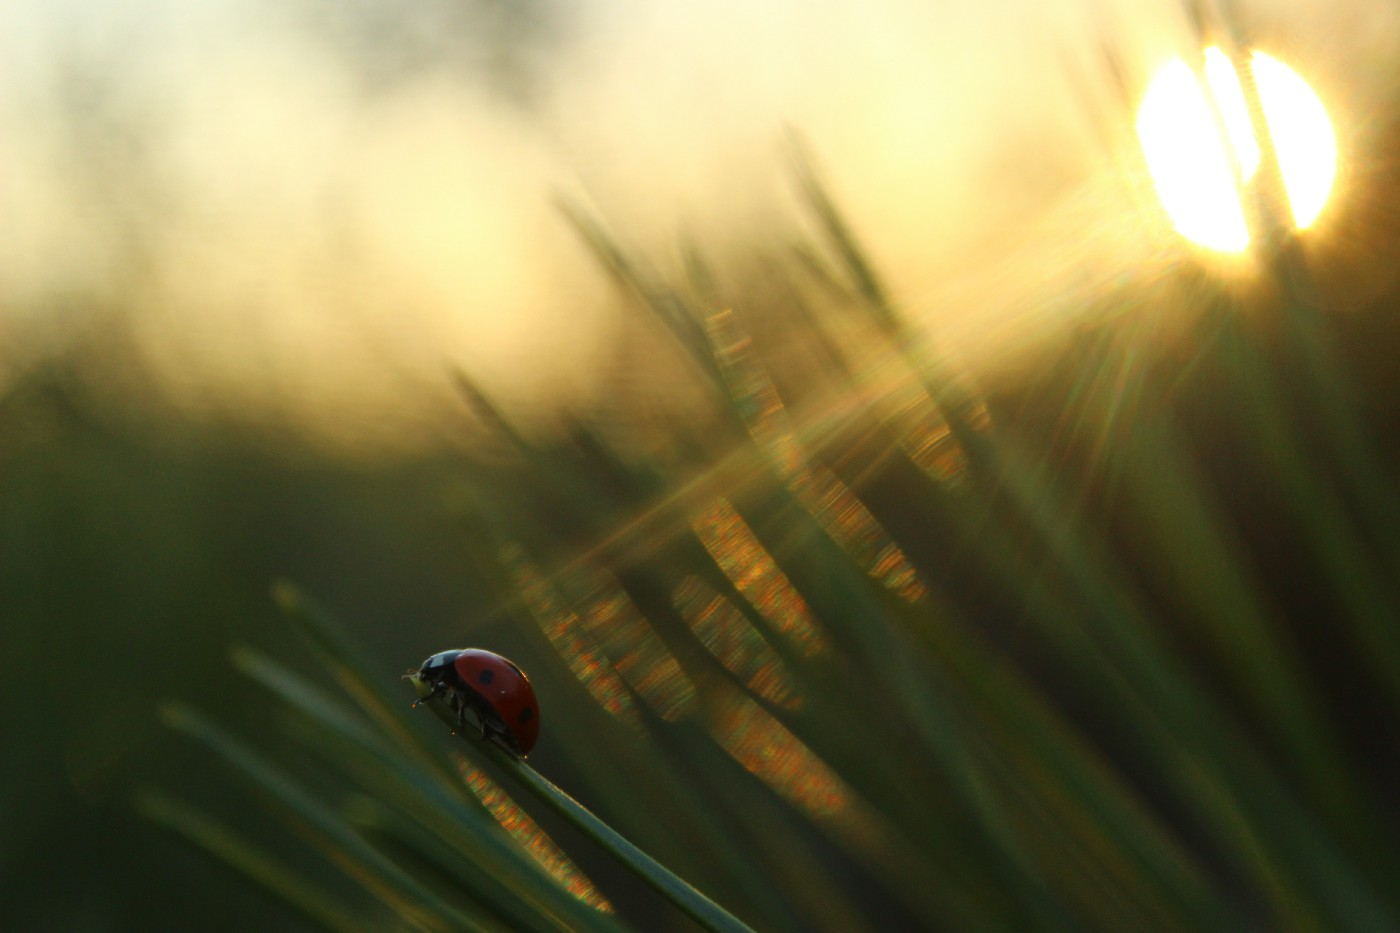 Ladybug standing on tall grass with the sun peeking through.